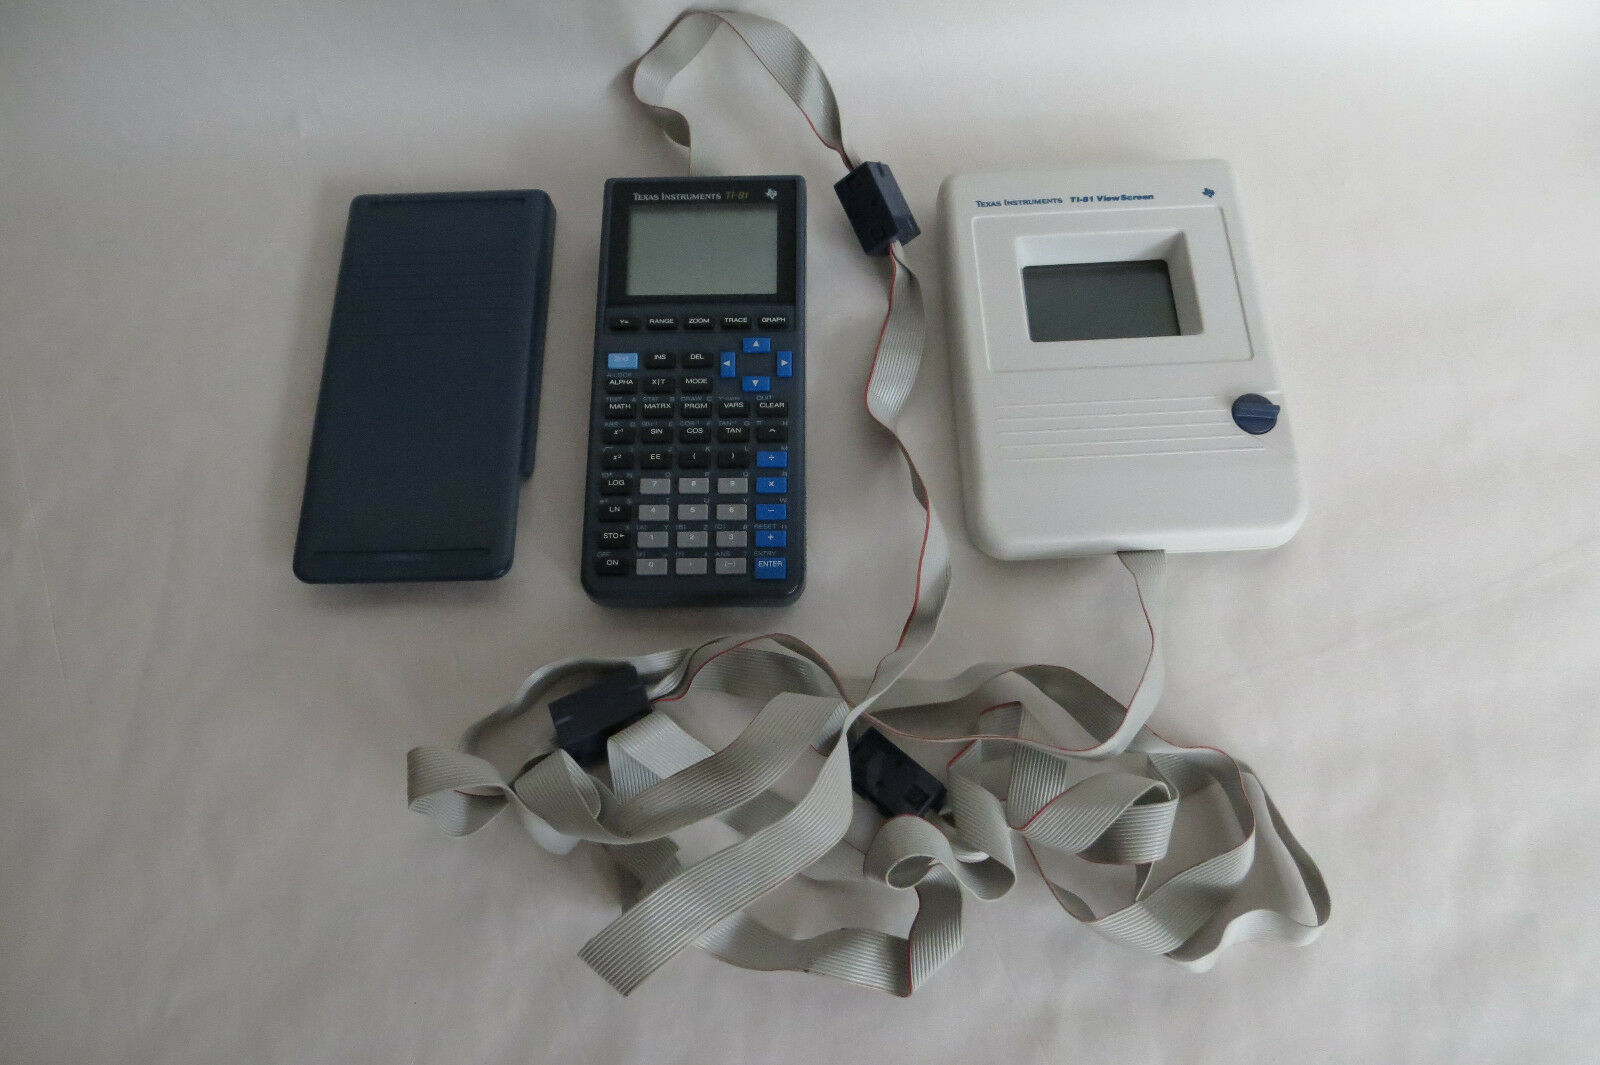 TI-81 TEXAS INSTRUMENTS GRAPHING CALCULATOR WITH VIEWSCREEN TESTED VIEW SCREEN